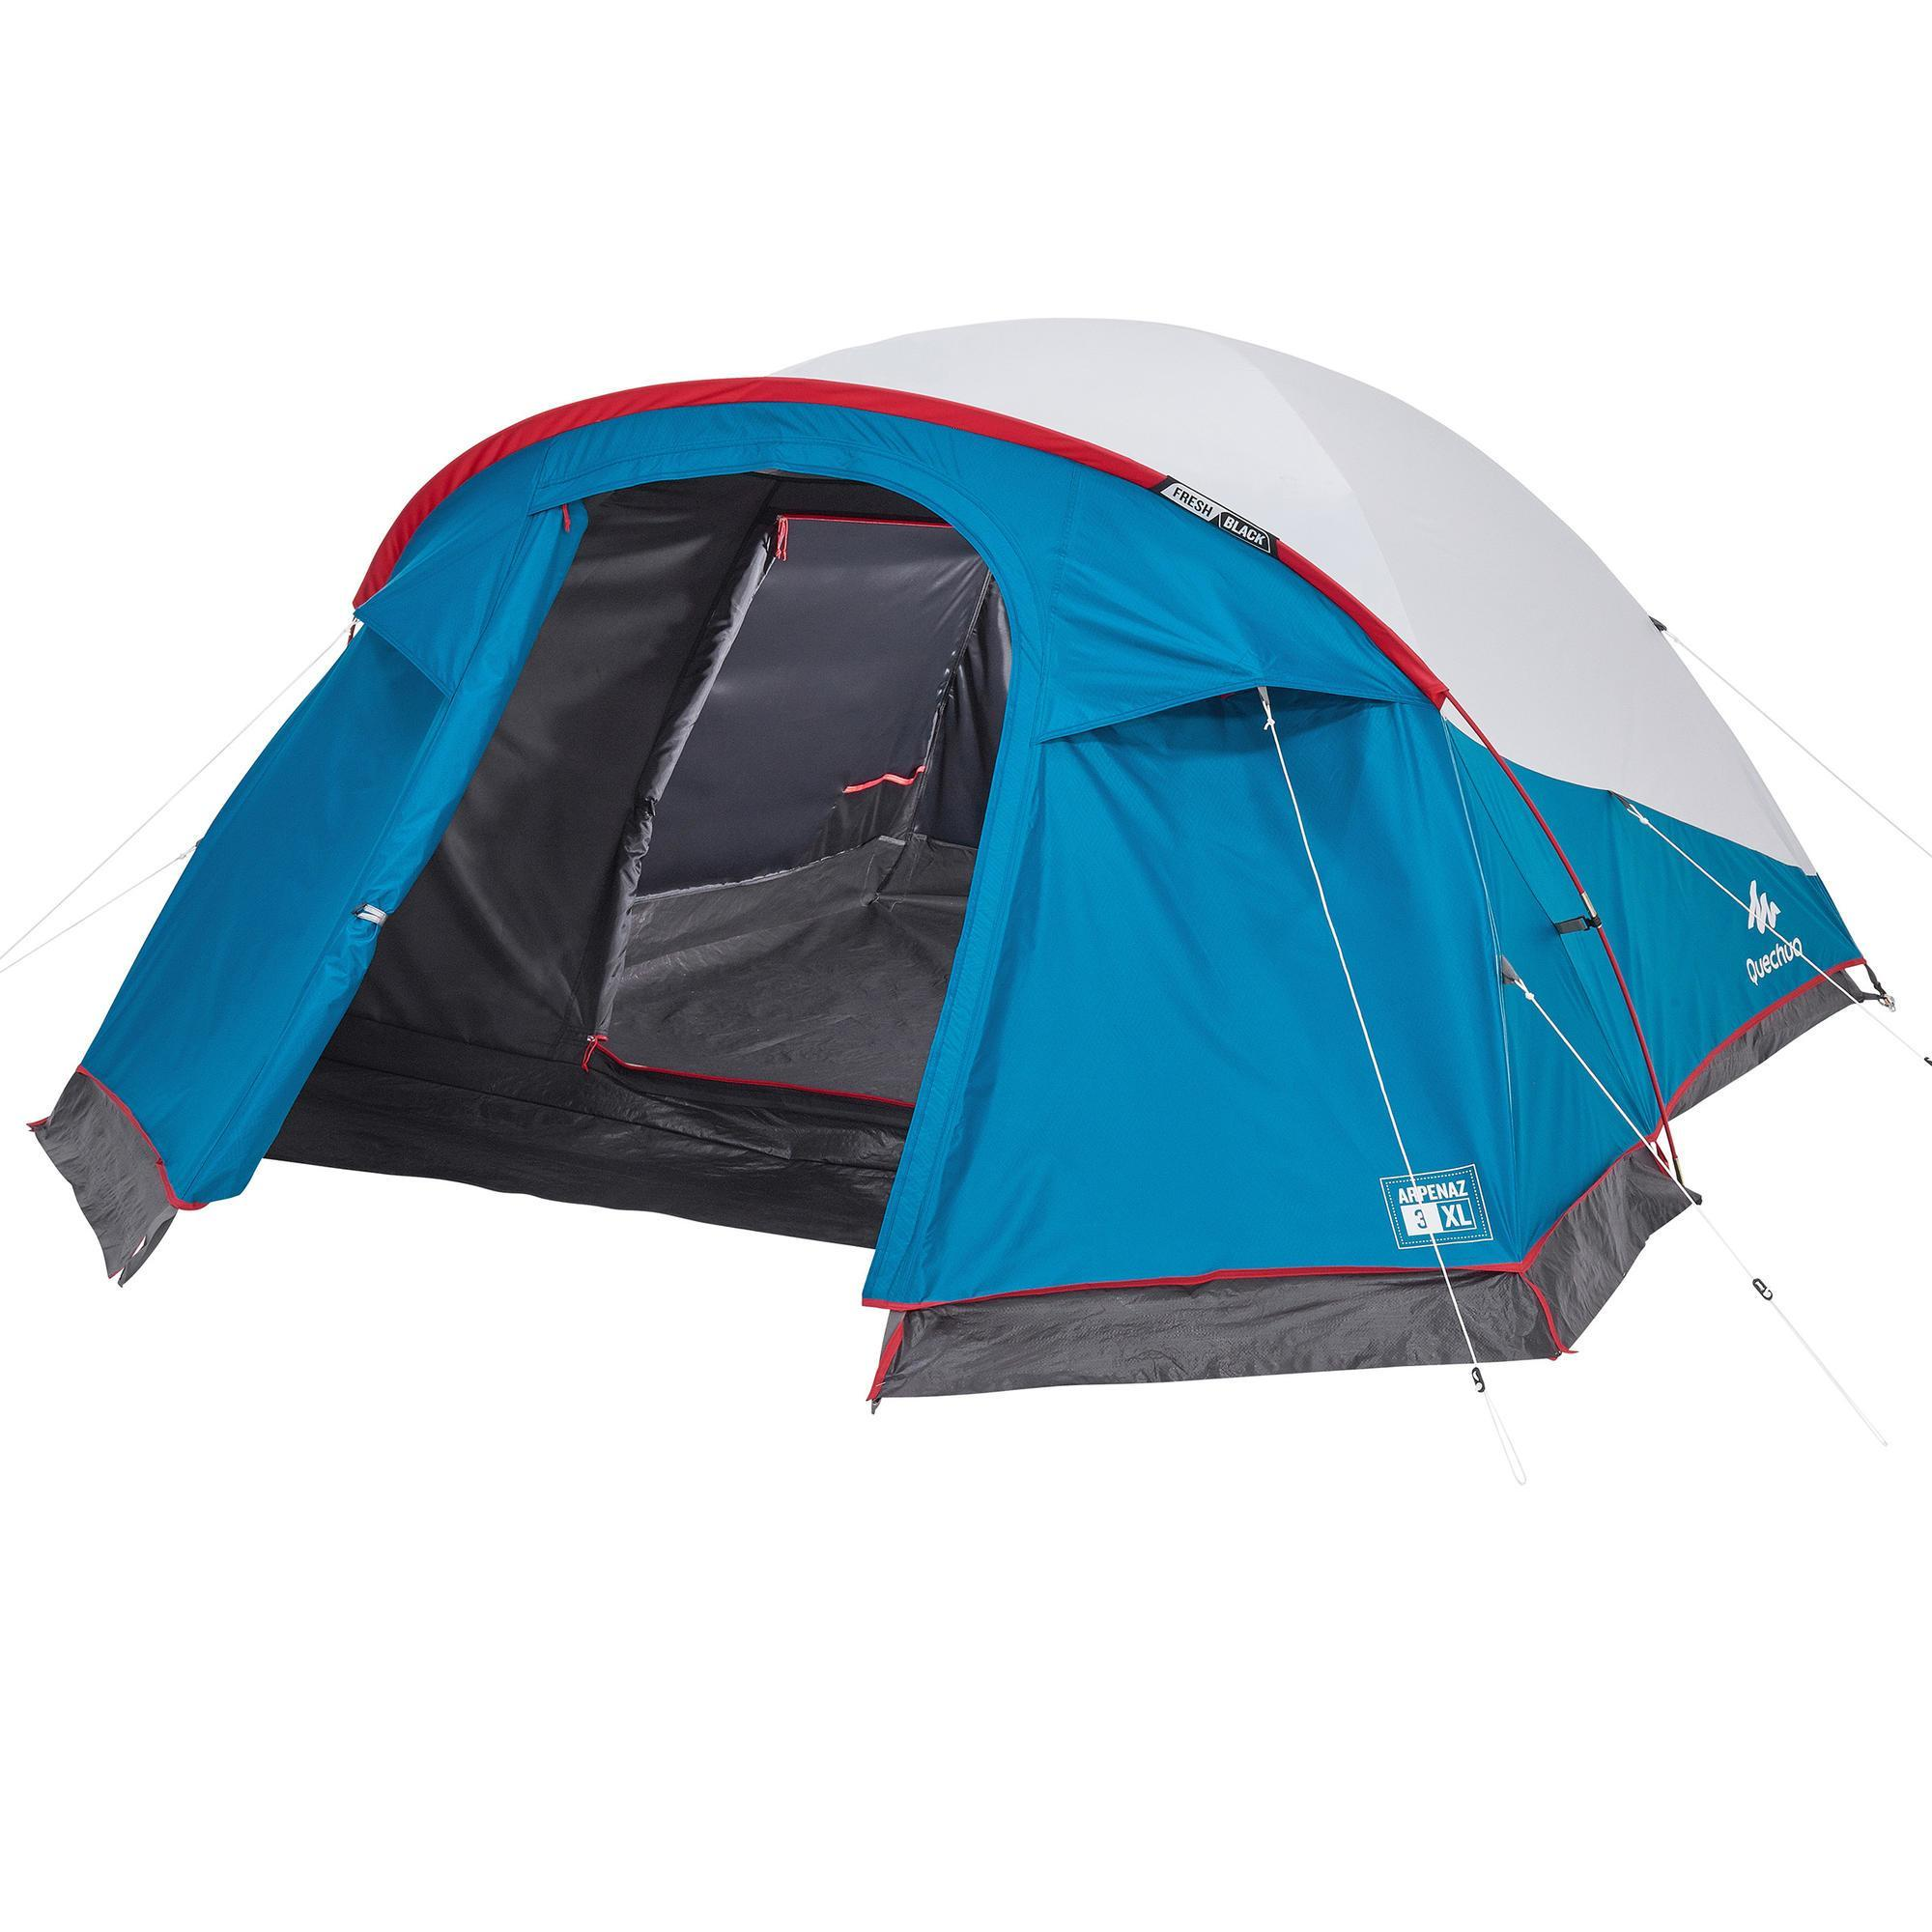 Quechua Tent | 3 Persoons | Blauw/wit | XL Fresh & Black